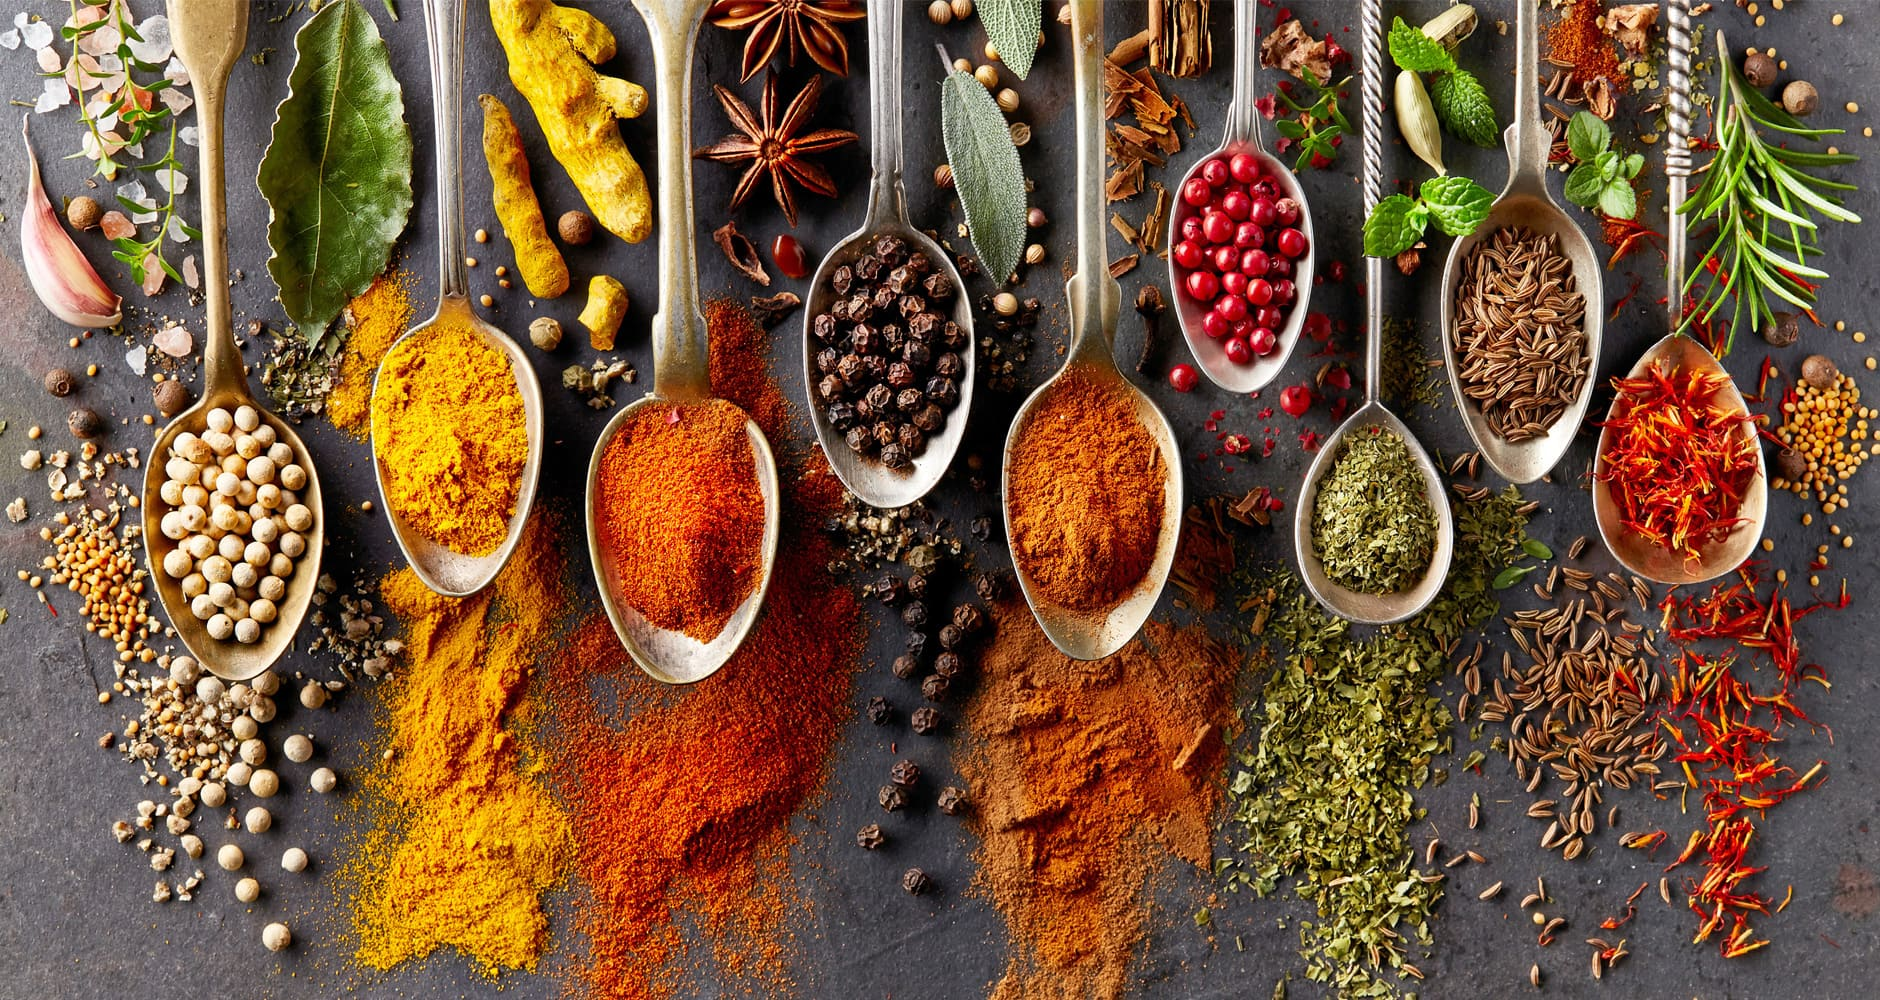 10 Spice Blends You Can Make Yourselfimage preview